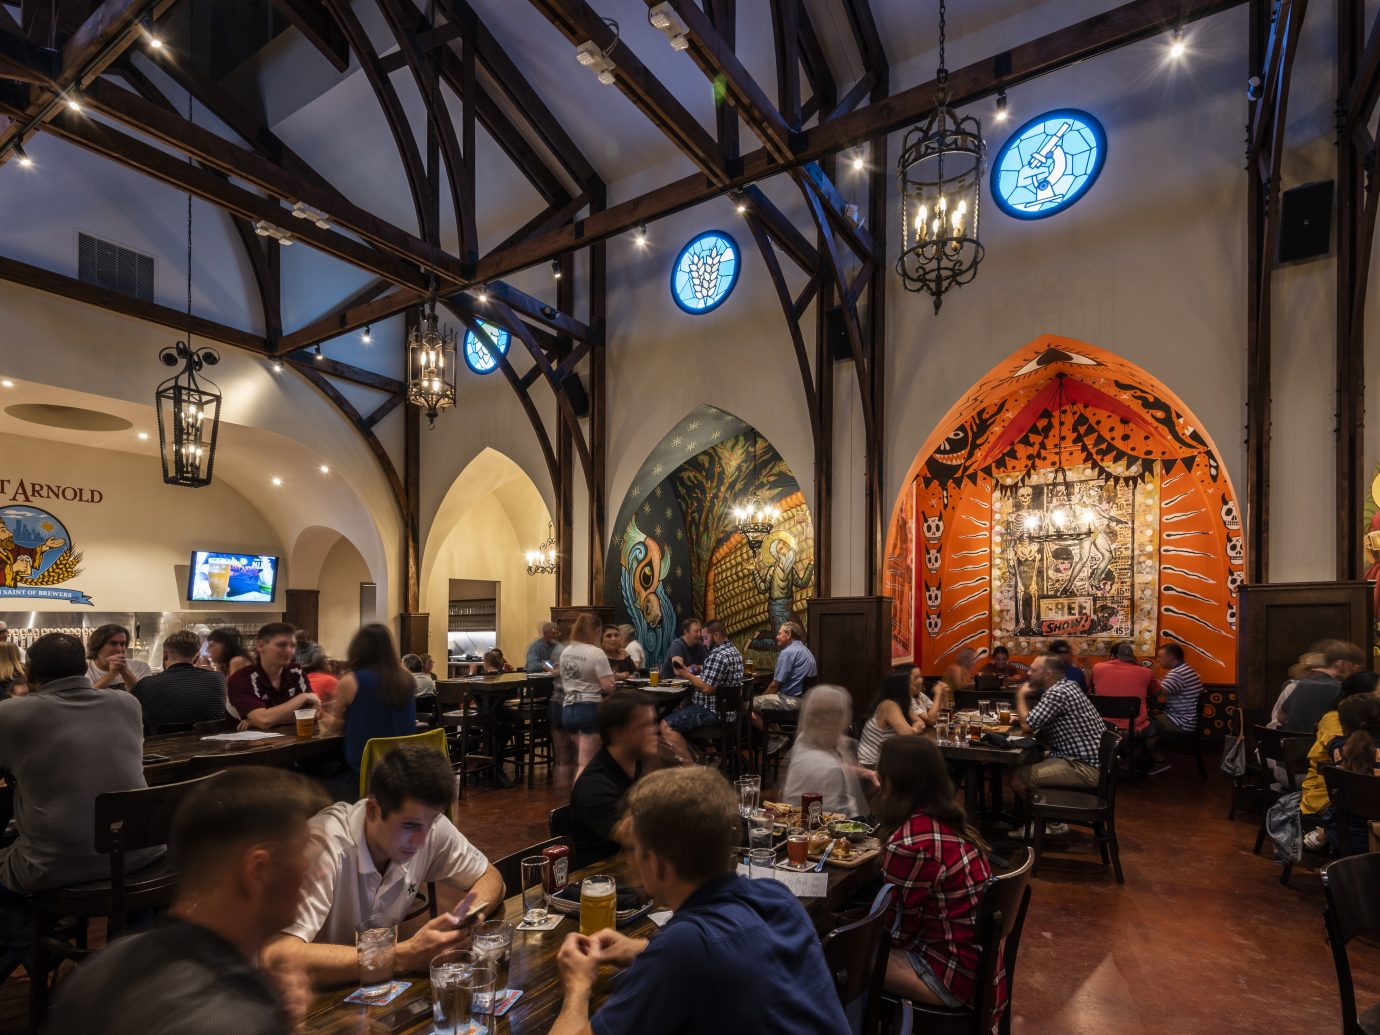 Interior view of Saint Arnold Brewery in Houston, TX